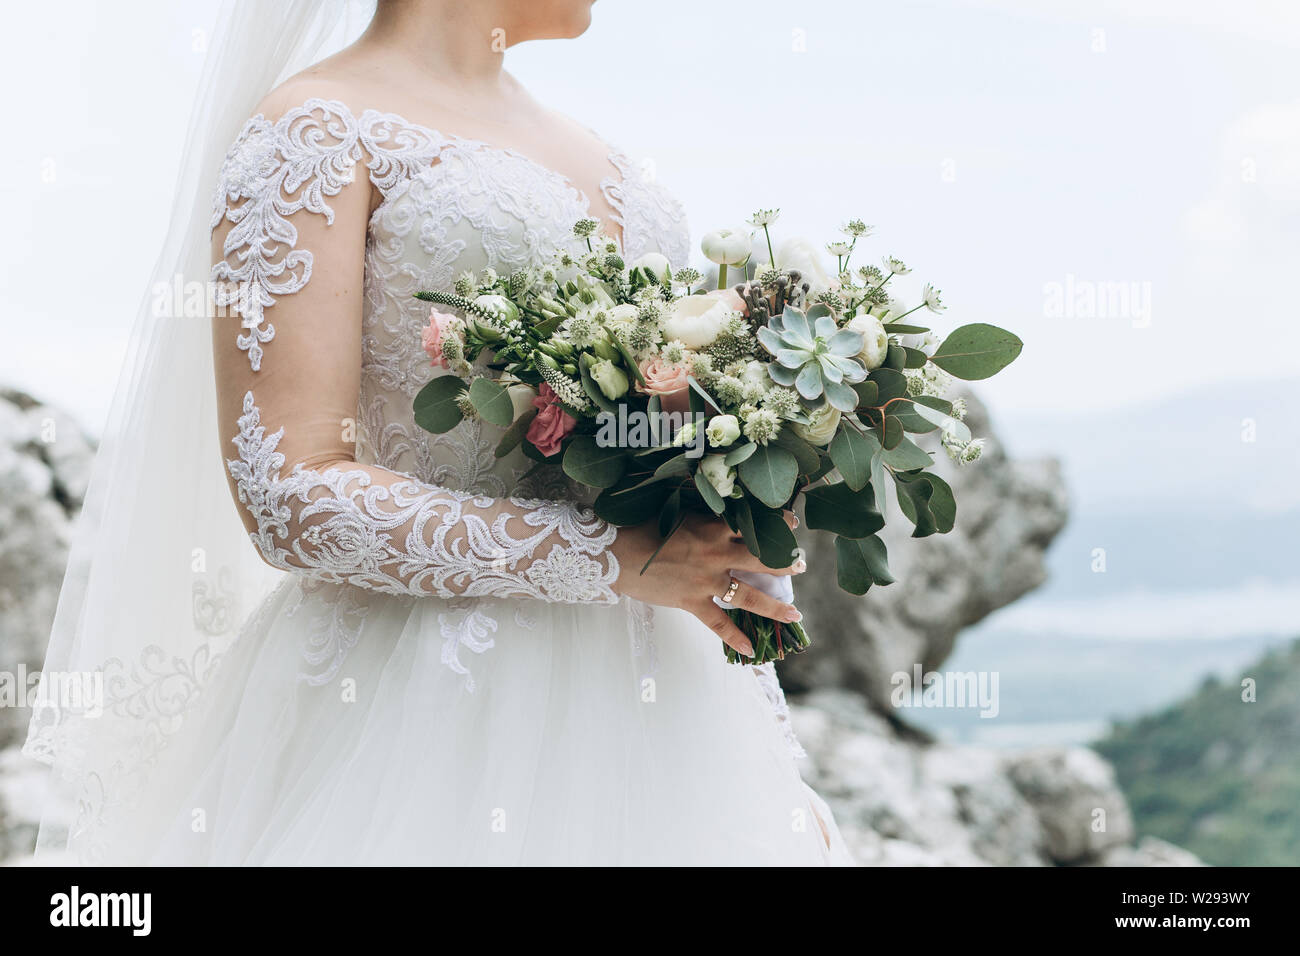 A Bride In A White Dress Is Holding A Beautiful Wedding Bouquet